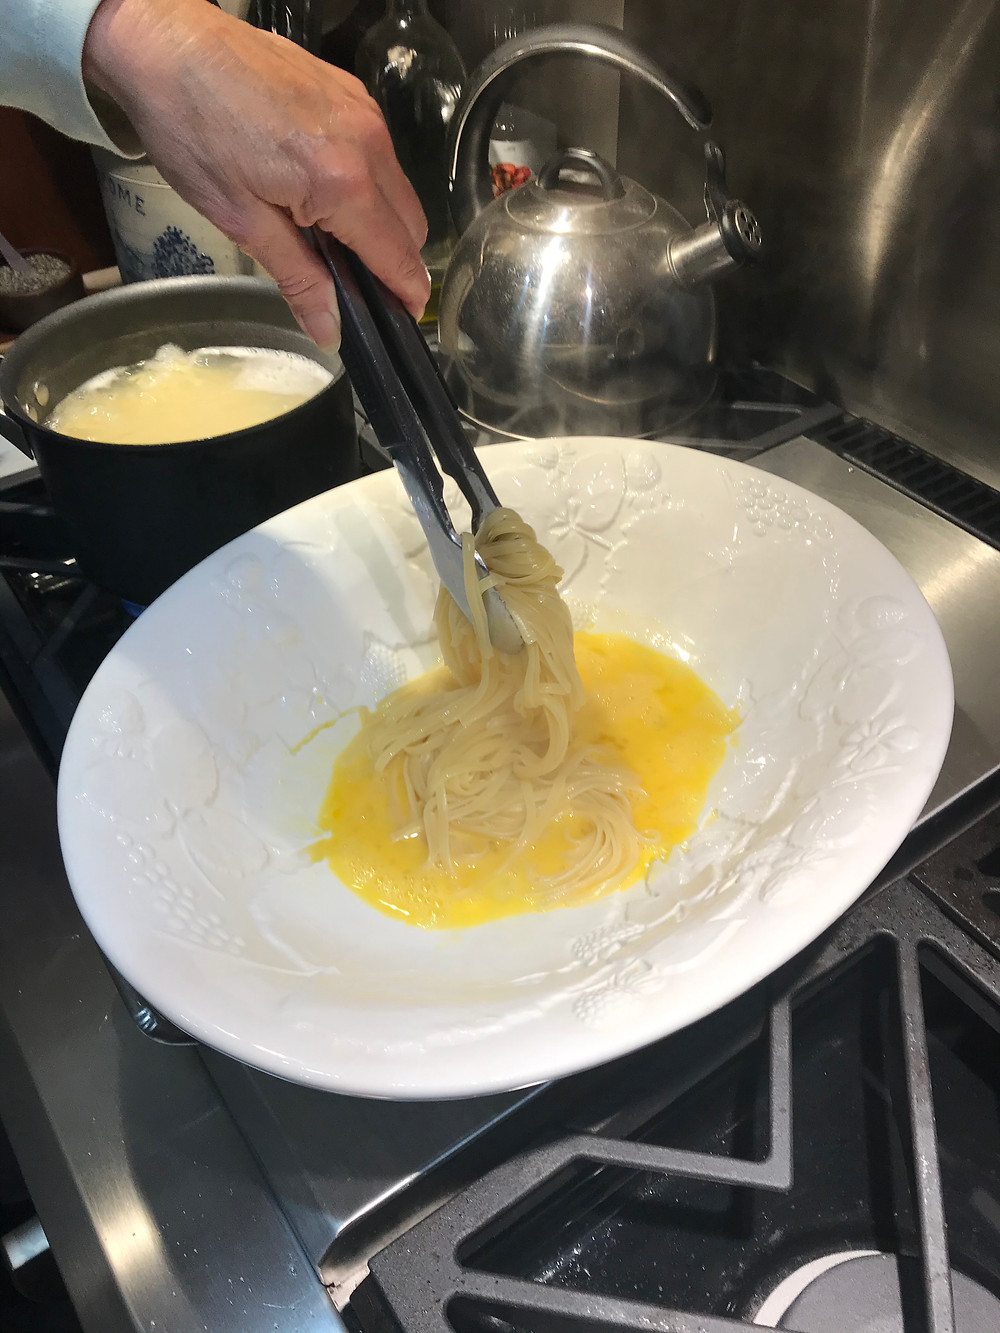 2) Add hot pasta to beaten eggs